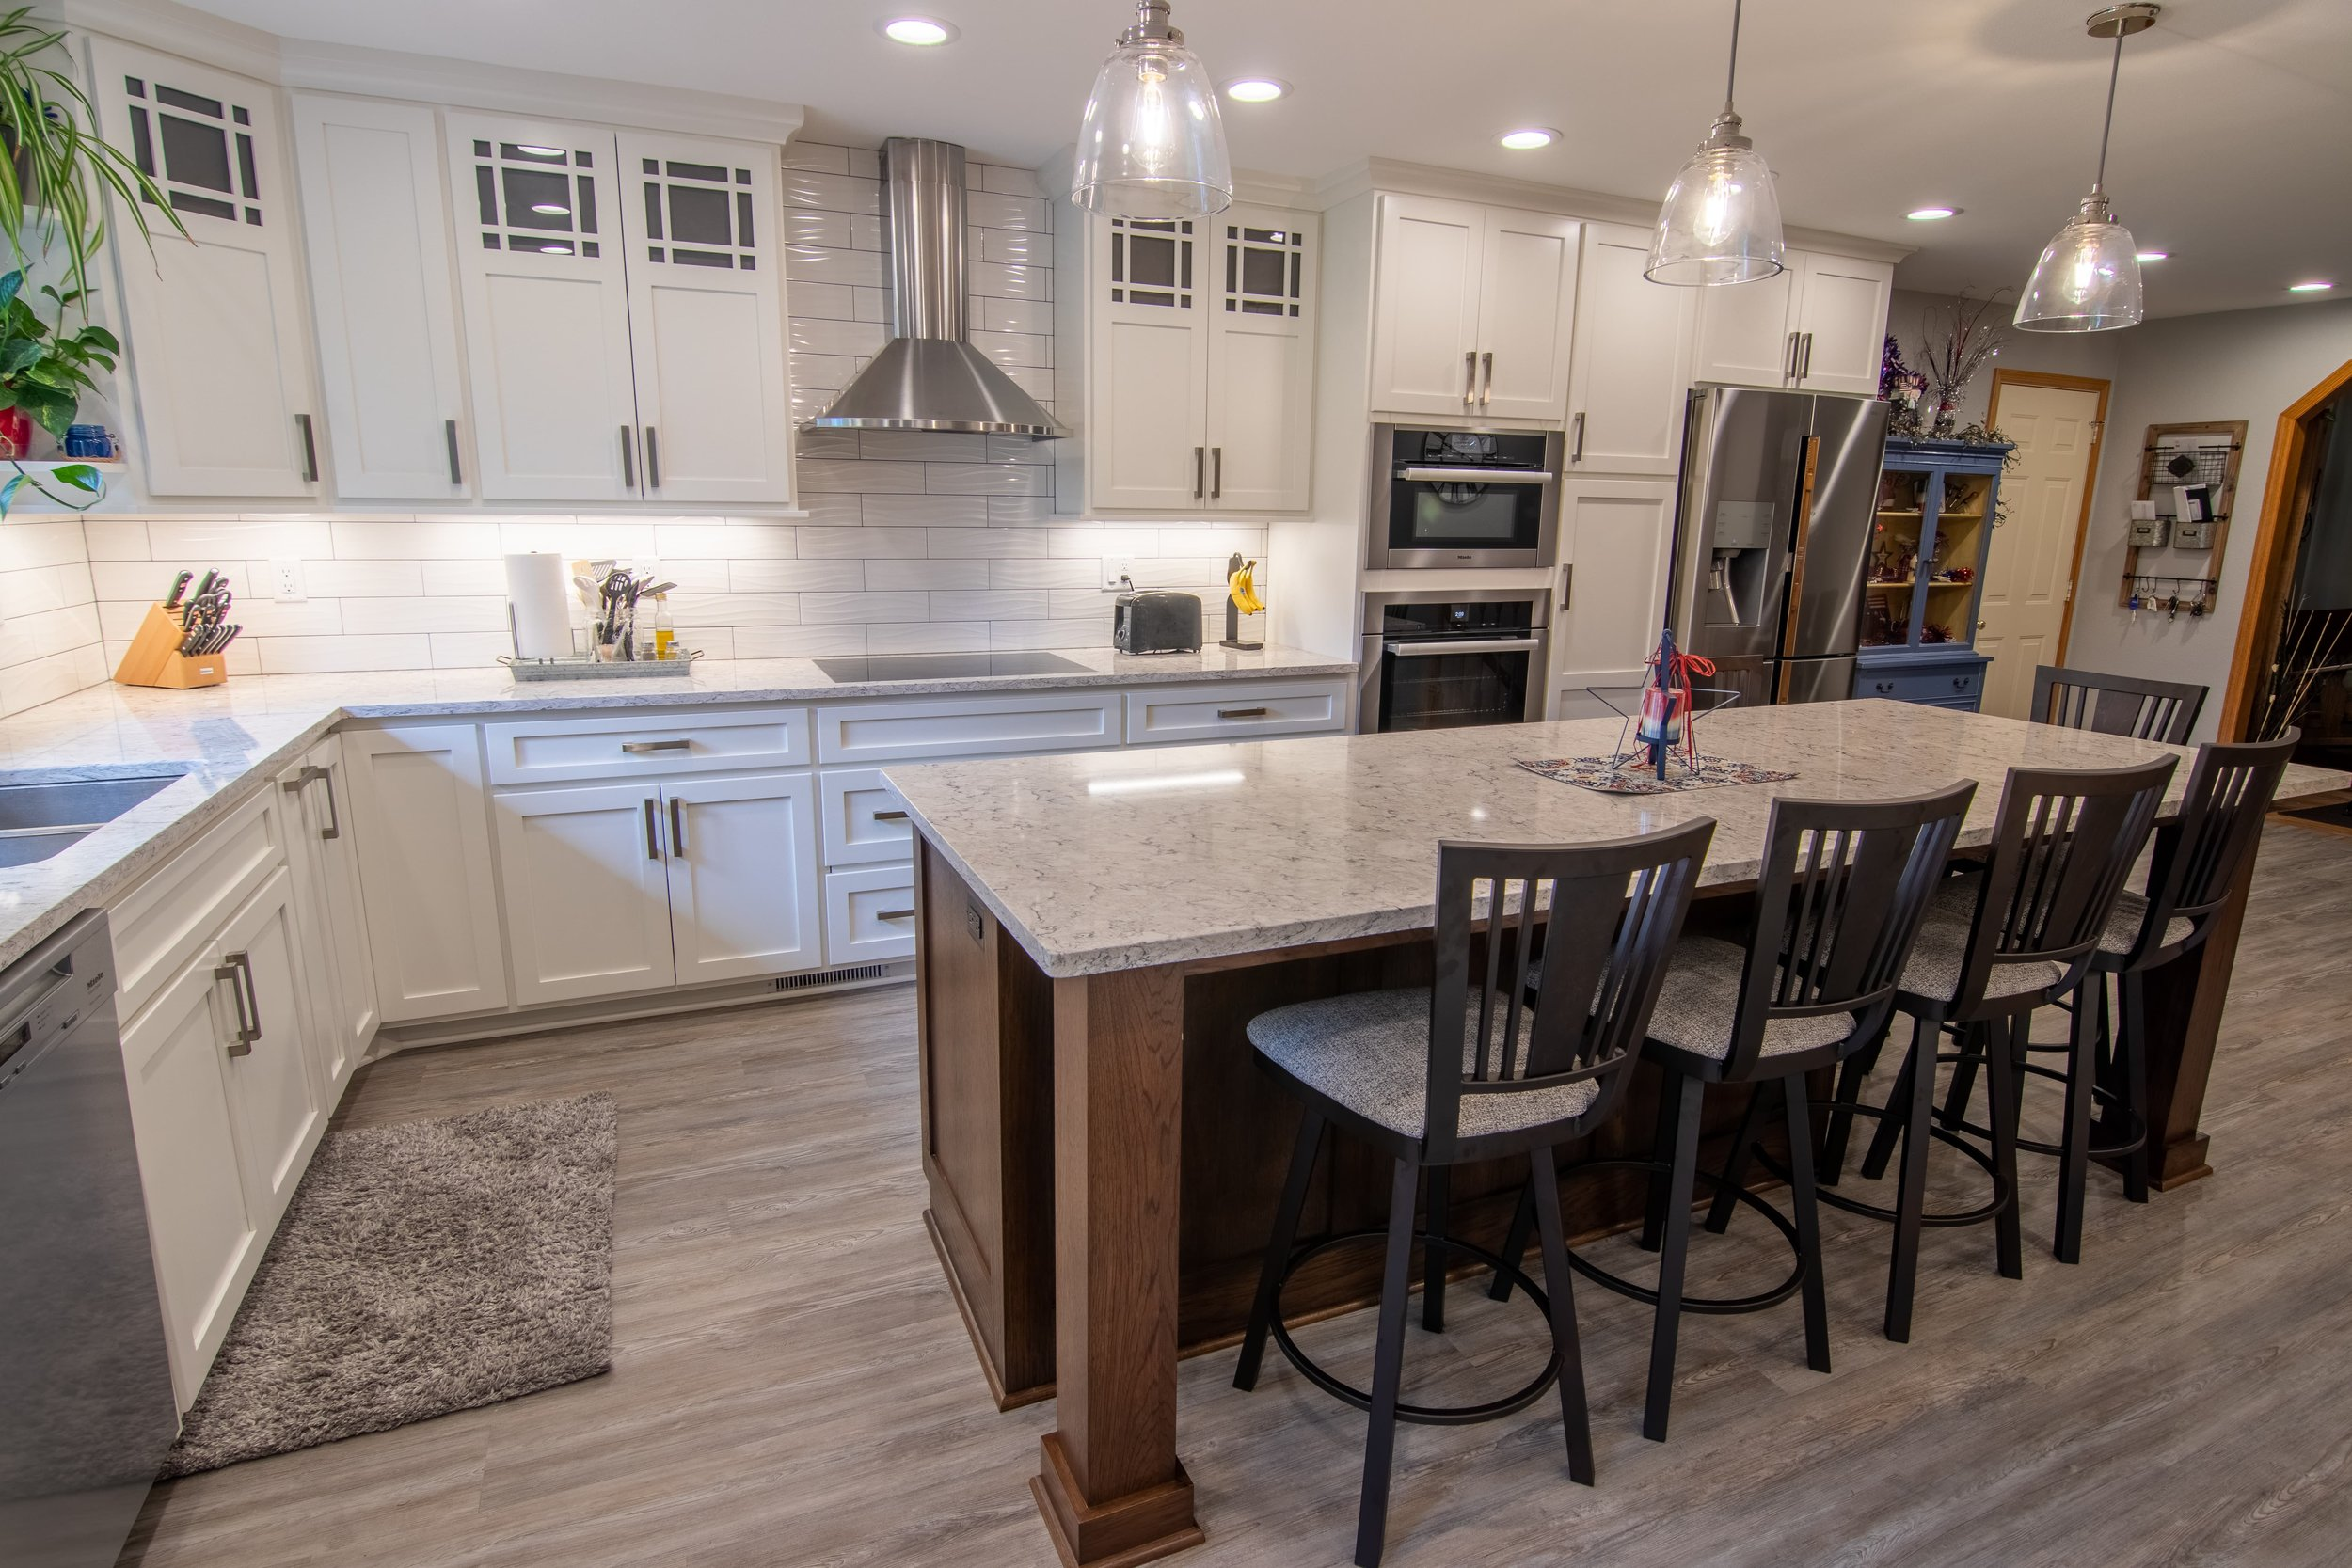 kitchen-remodel-renovate-madison-wi-16.jpg